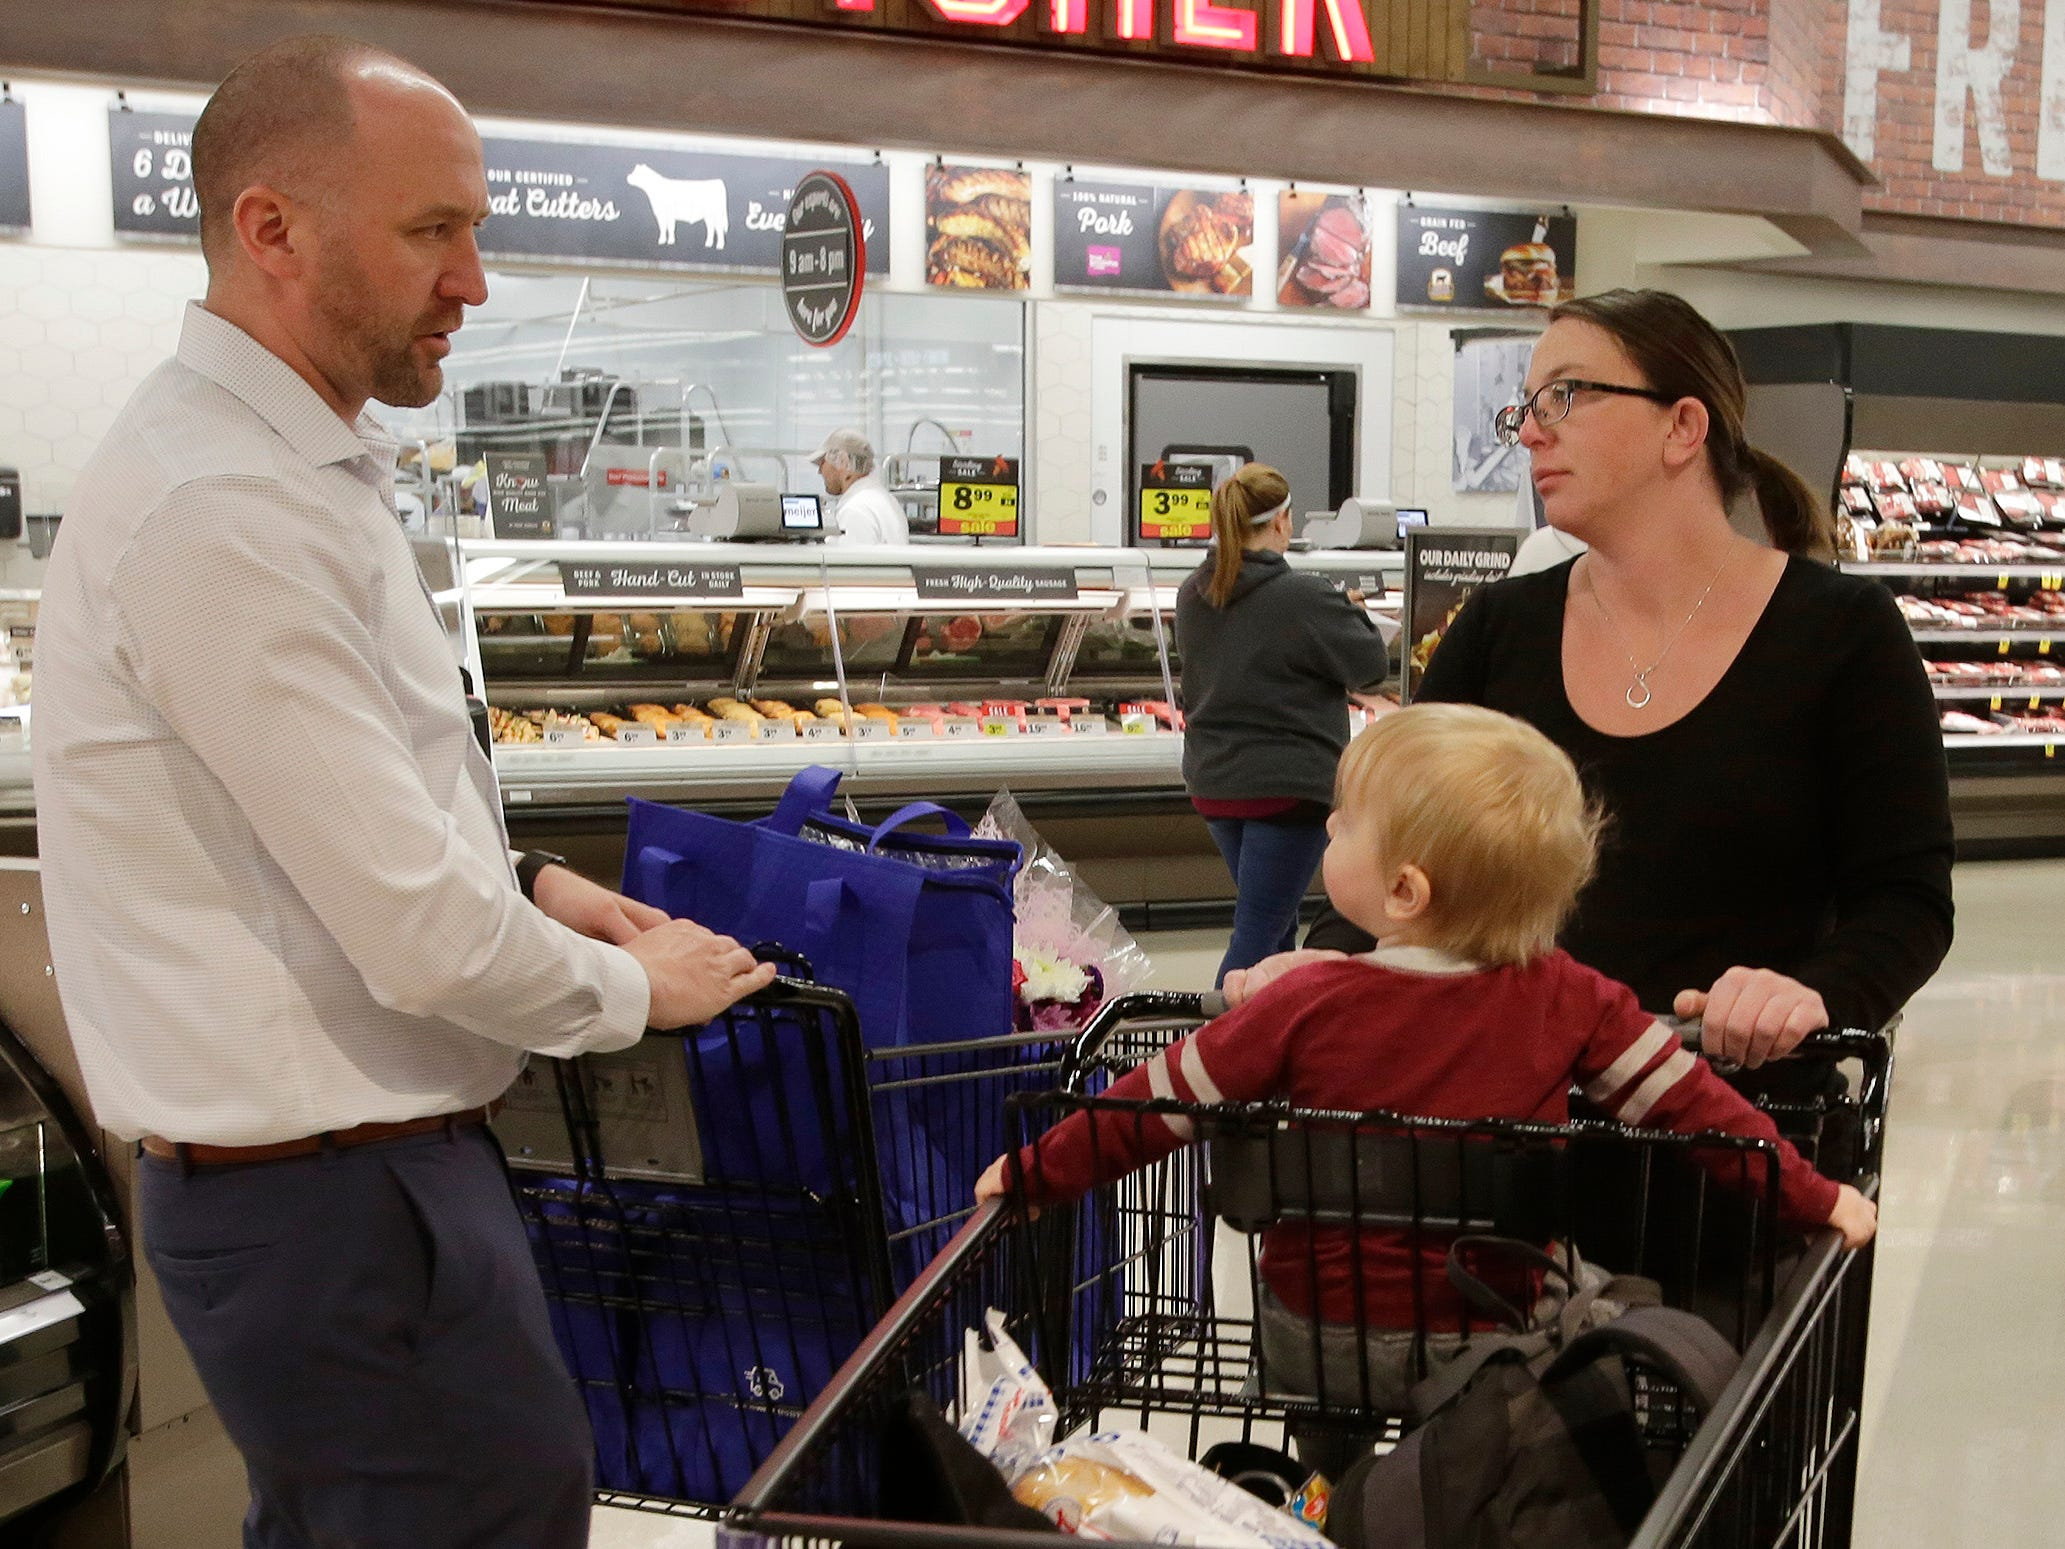 Tasha Peterson of Howards Grove, Wis., right, along with her son Lucas, 2, are presented gifts by Meijer Store Director Jeff  Kietzman at Meijer, Saturday, May 11, 2019, in Sheboygan, Wis.